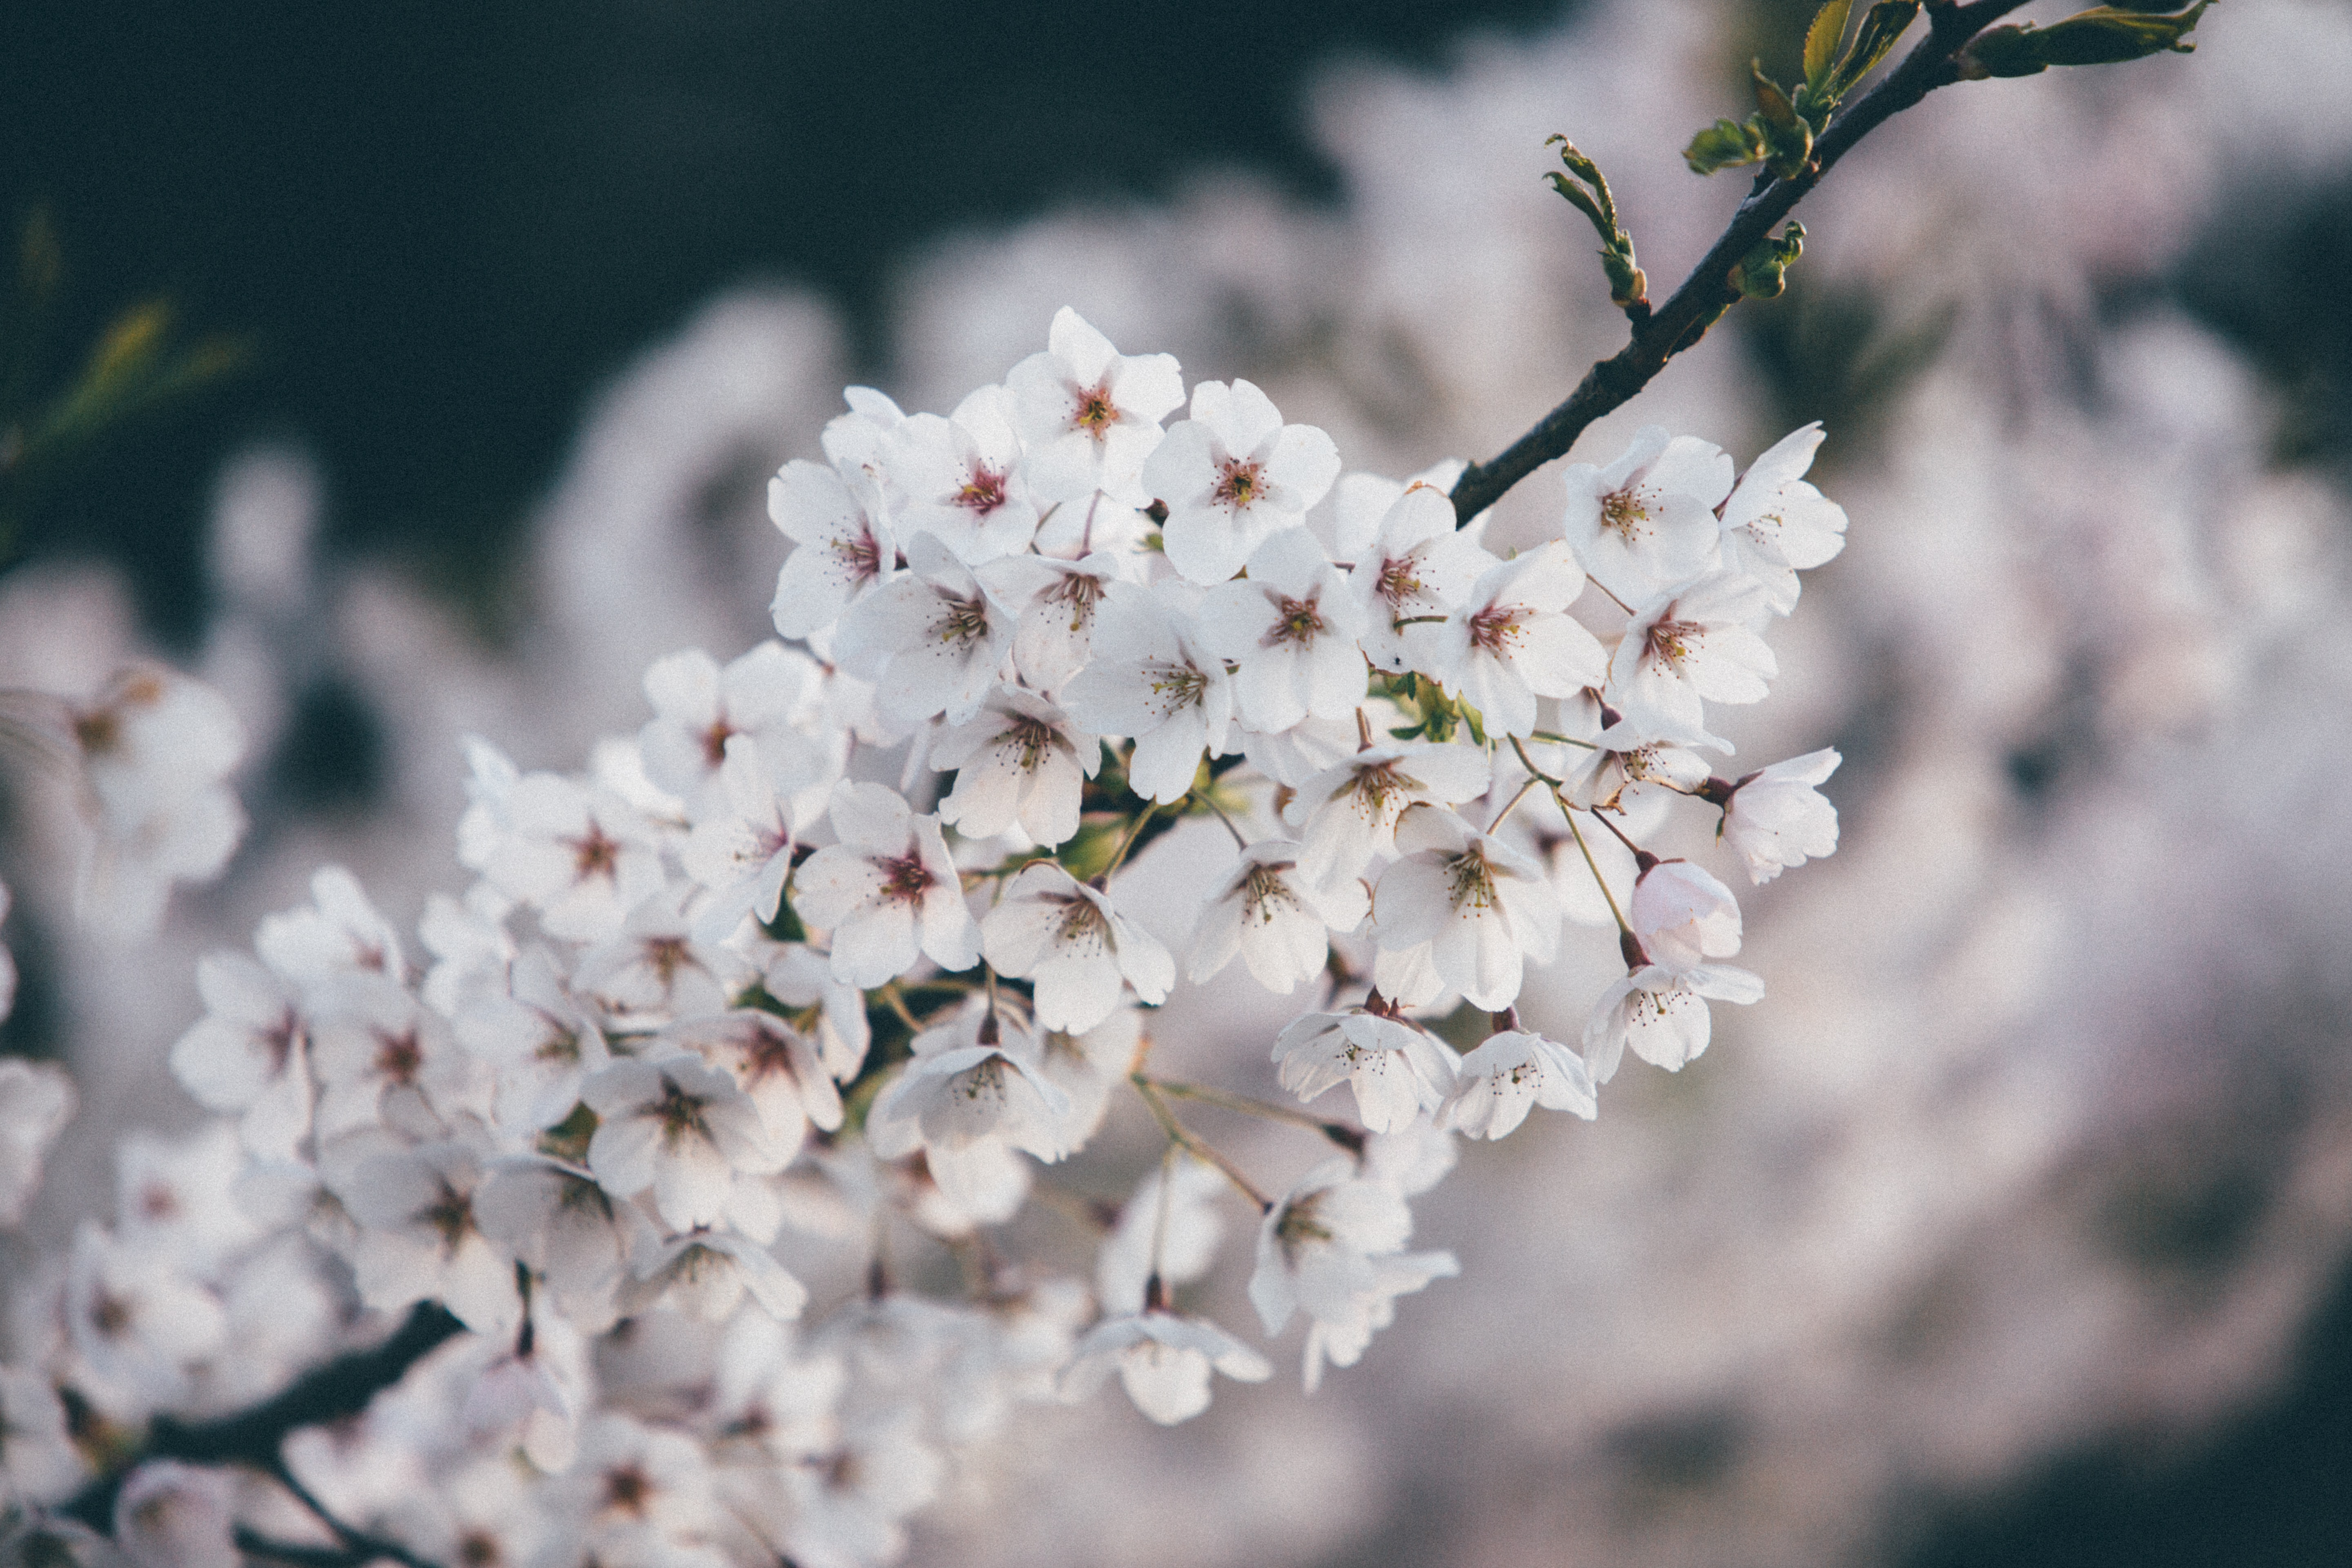 Close-up of white blossom on a thin branch